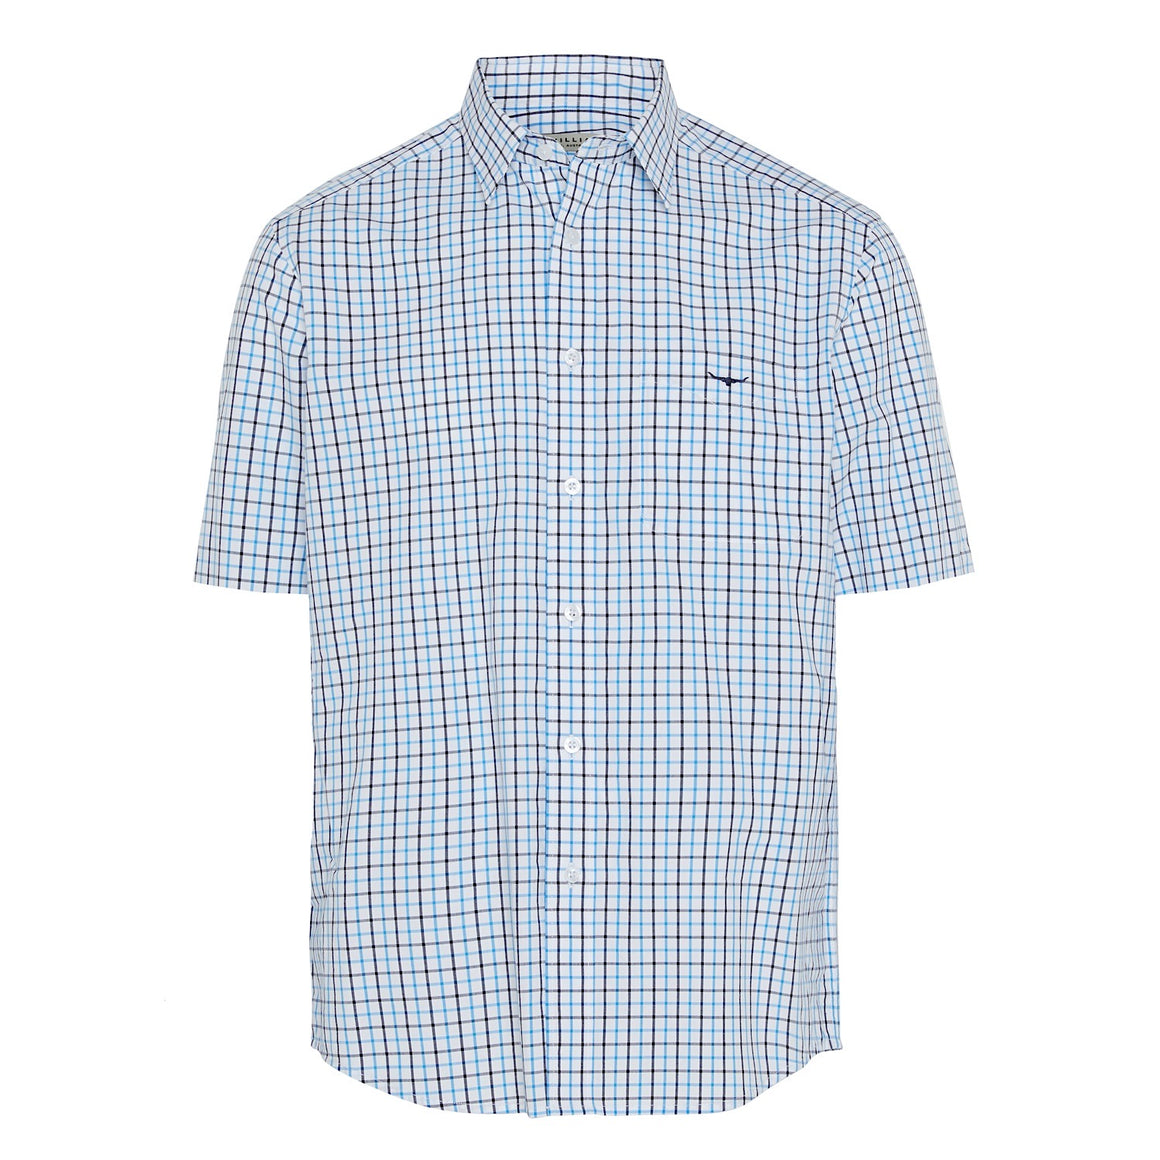 R.M.Williams Hervey Shirt White/Aqua Check Regular Fit